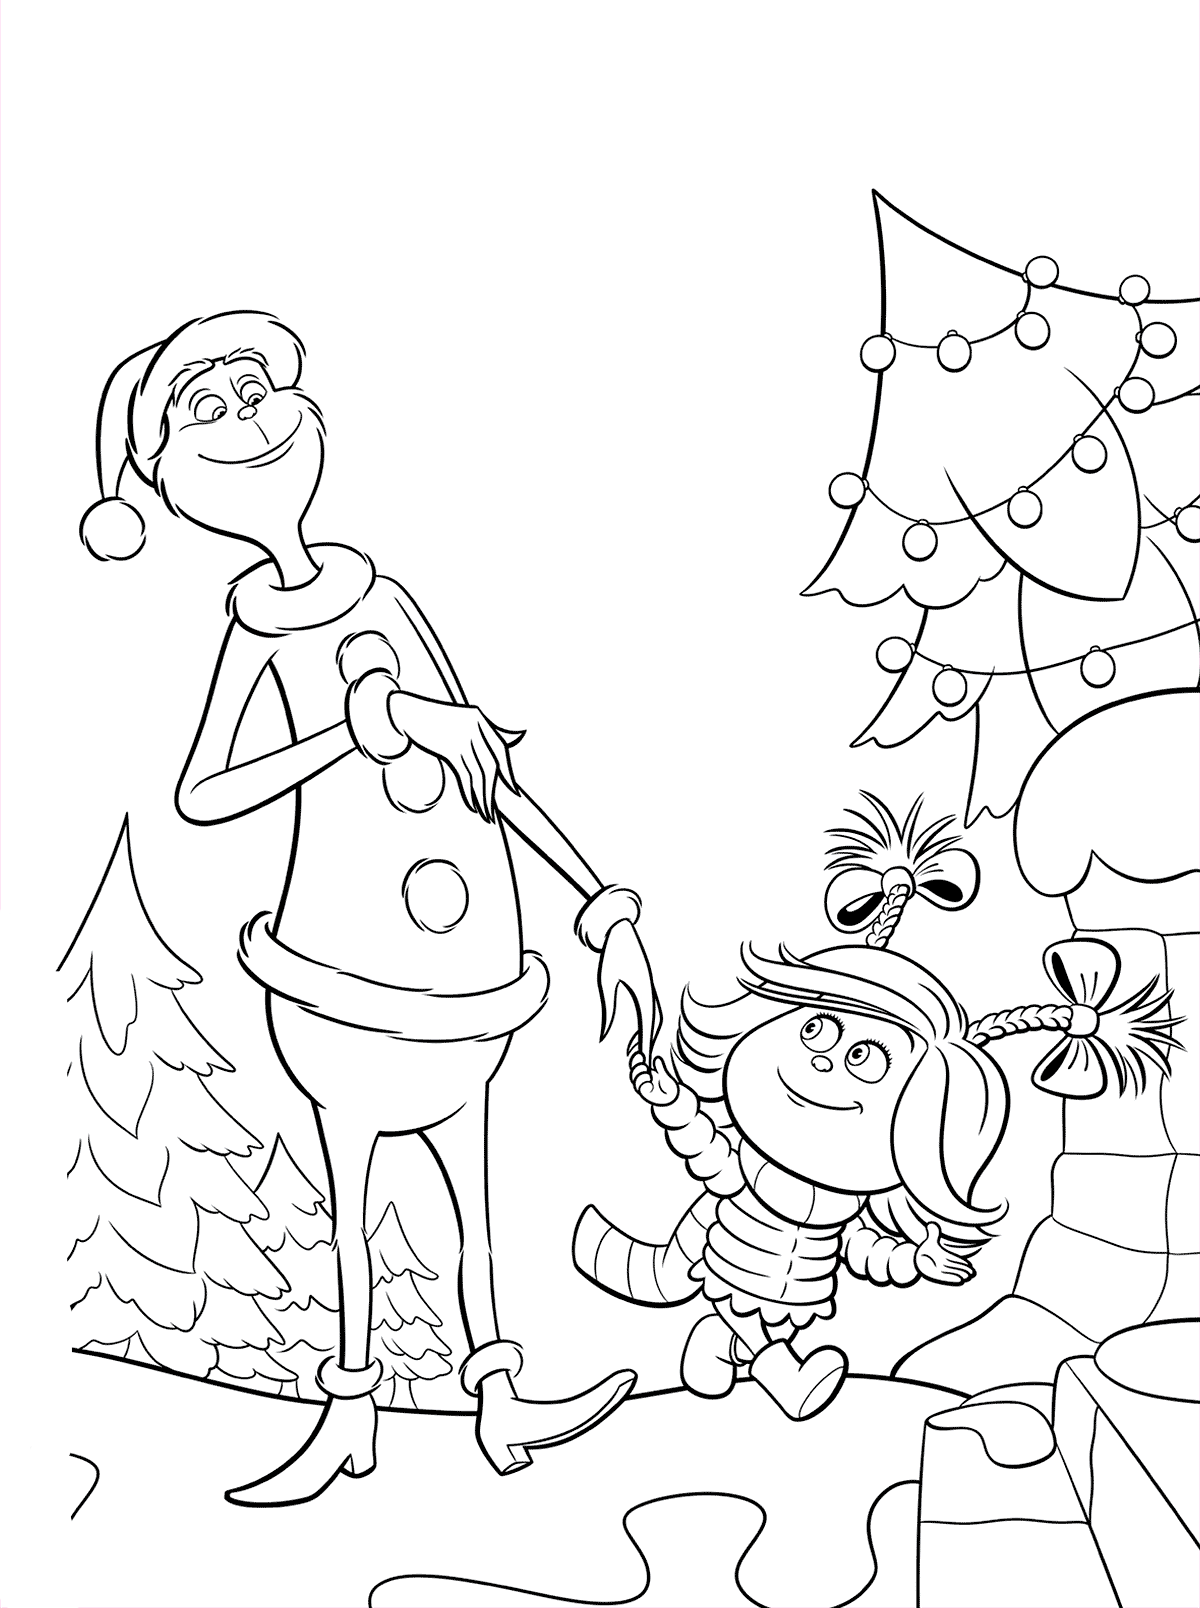 Cindy Lou Grinch is calling for dinner - Coloring pages ...